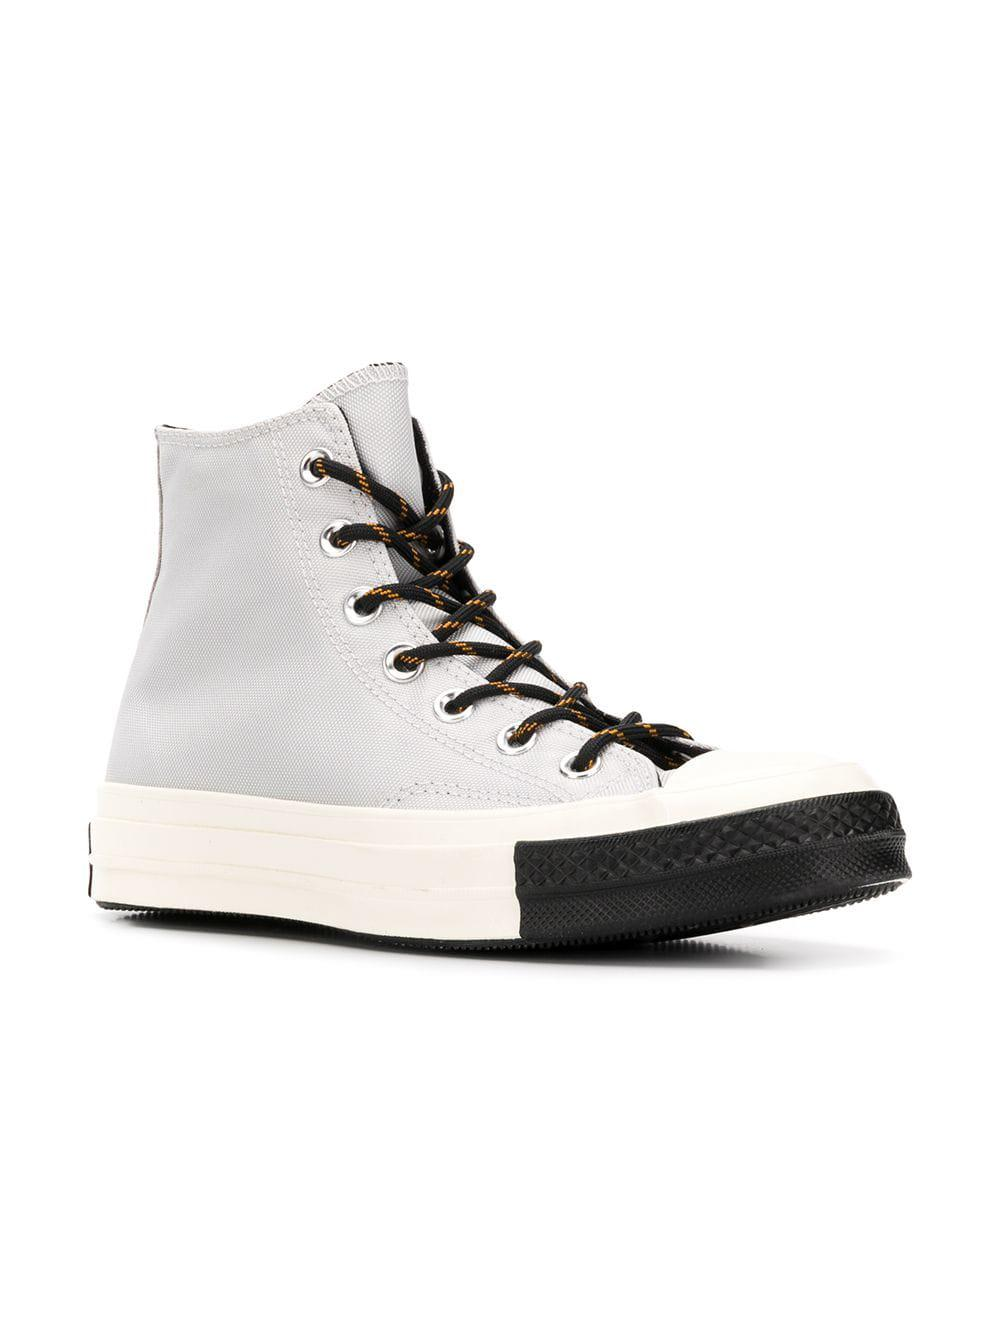 9c99352c7197d1 Converse - Gray Chuck 70 High-top Sneakers - Lyst. View fullscreen